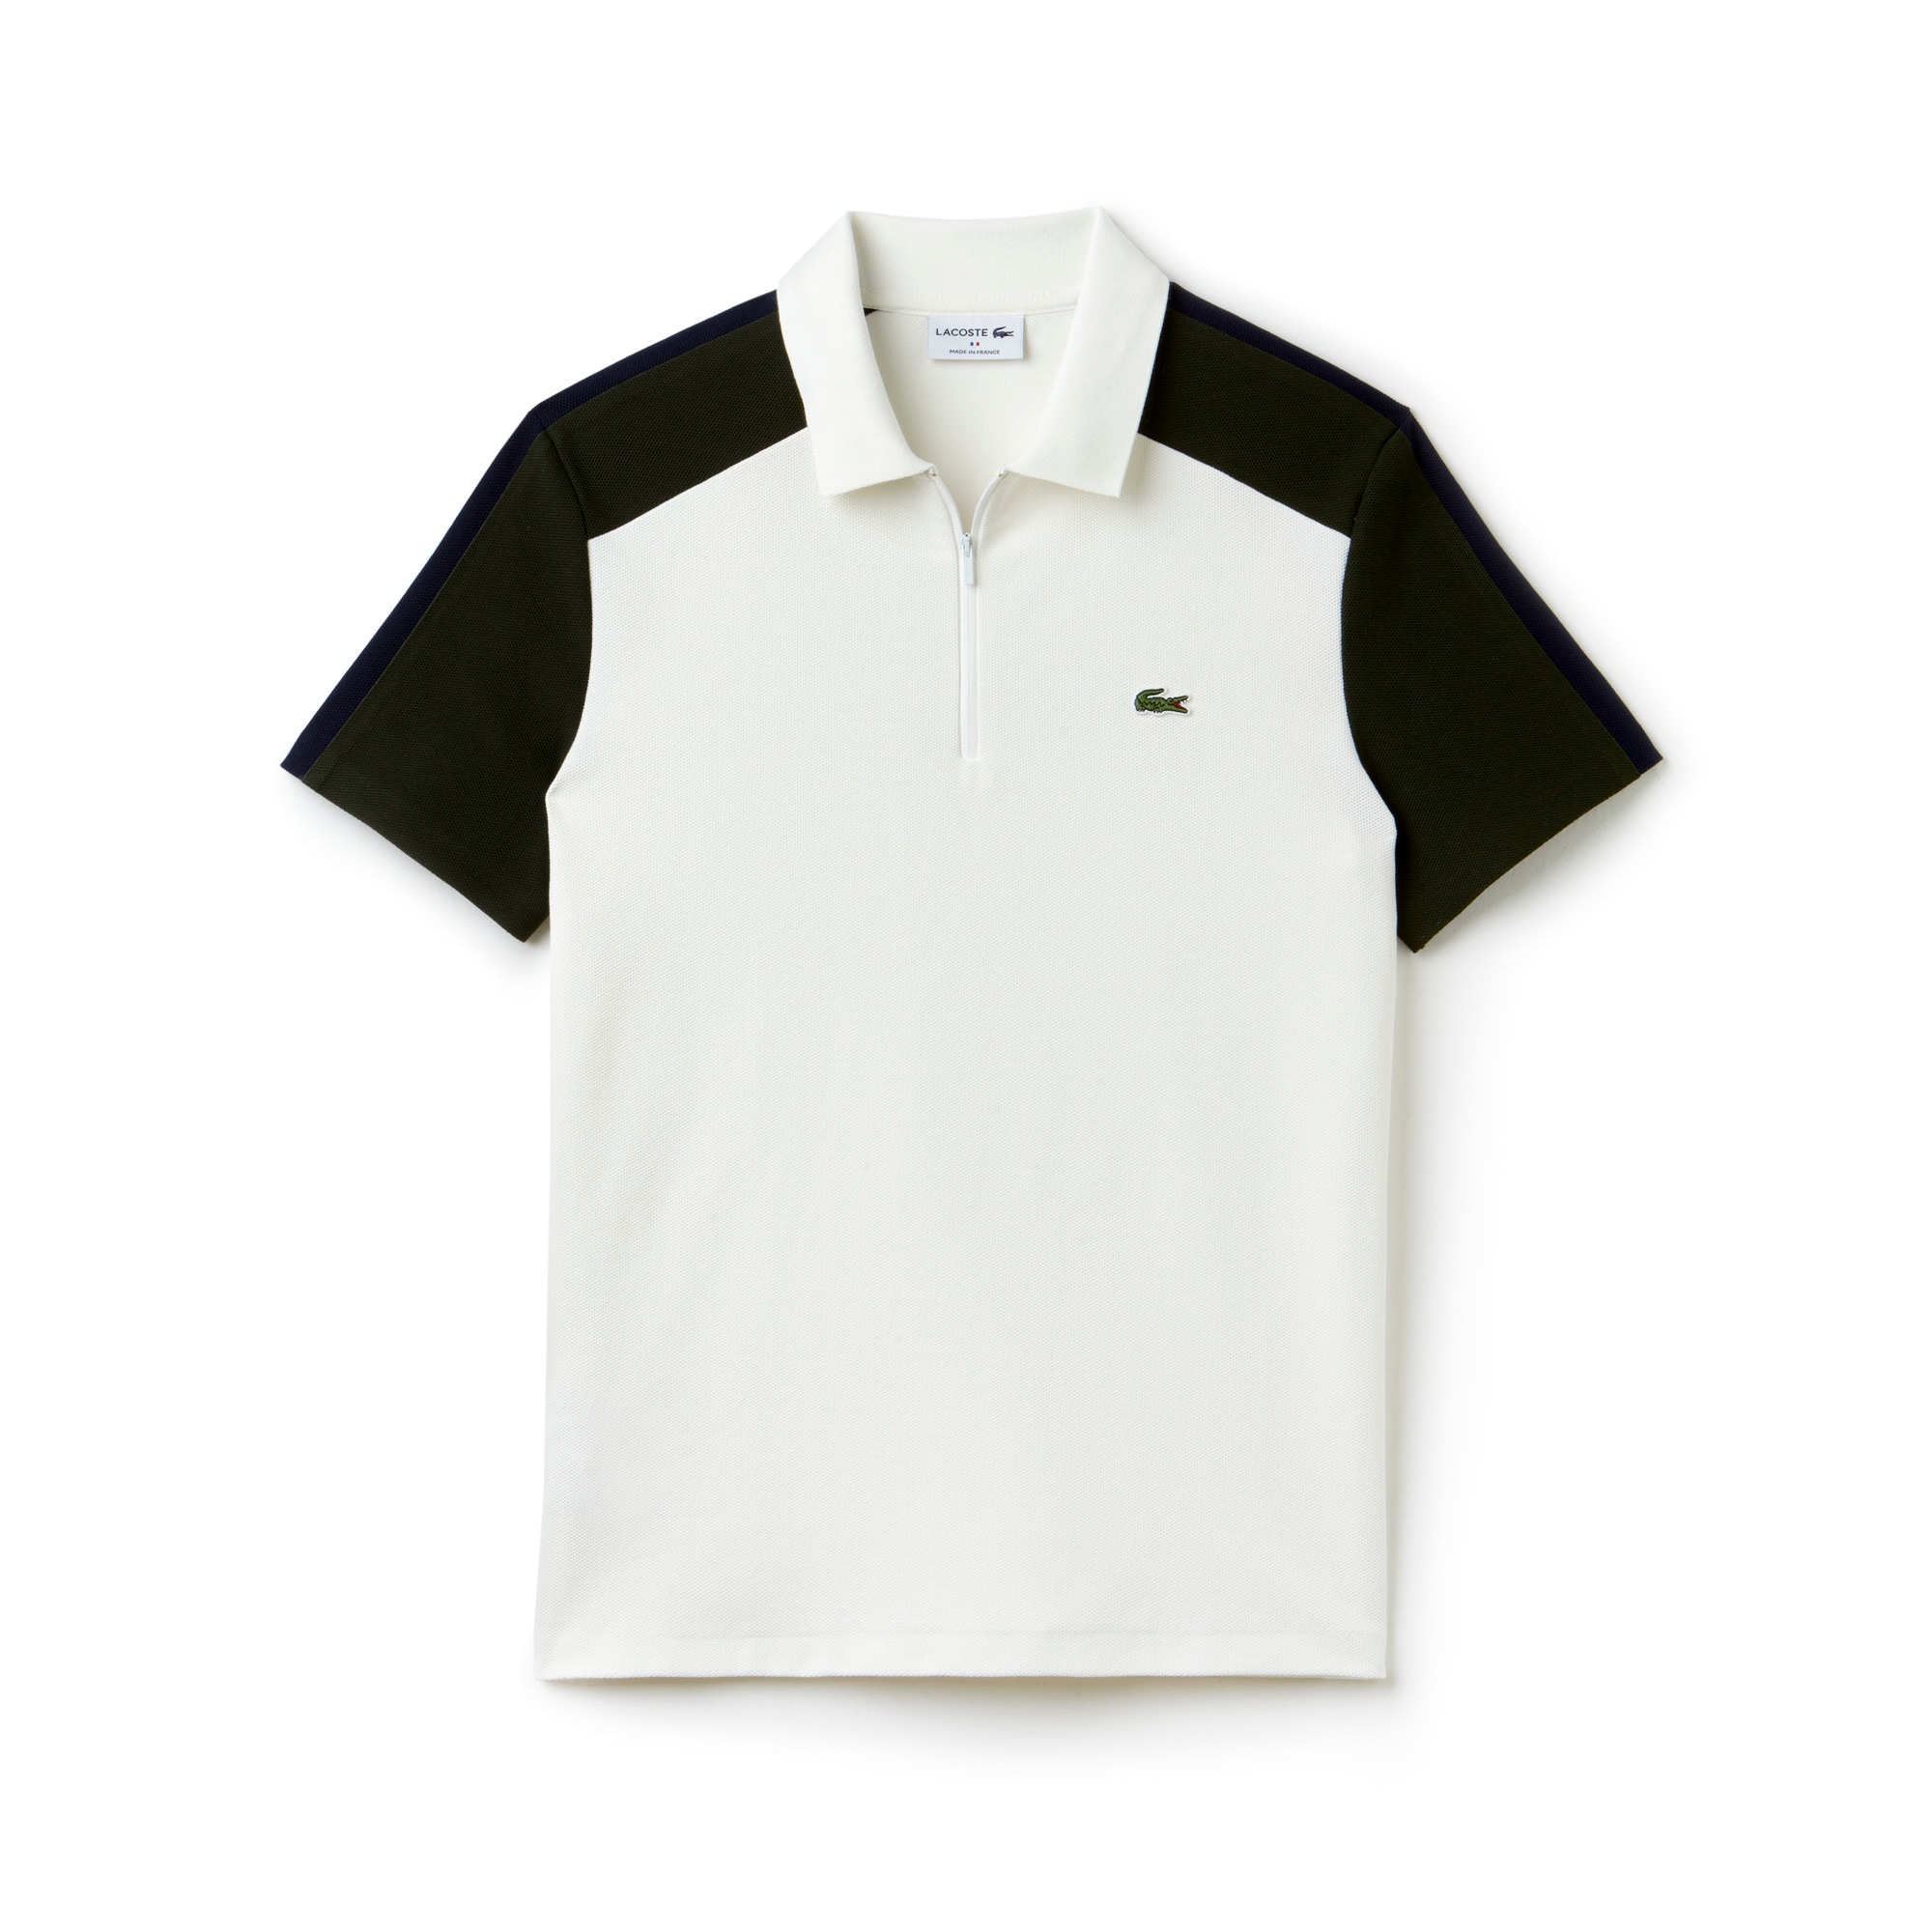 Regular Fit Herren-Polo aus Piqué LACOSTE MADE IN FRANCE